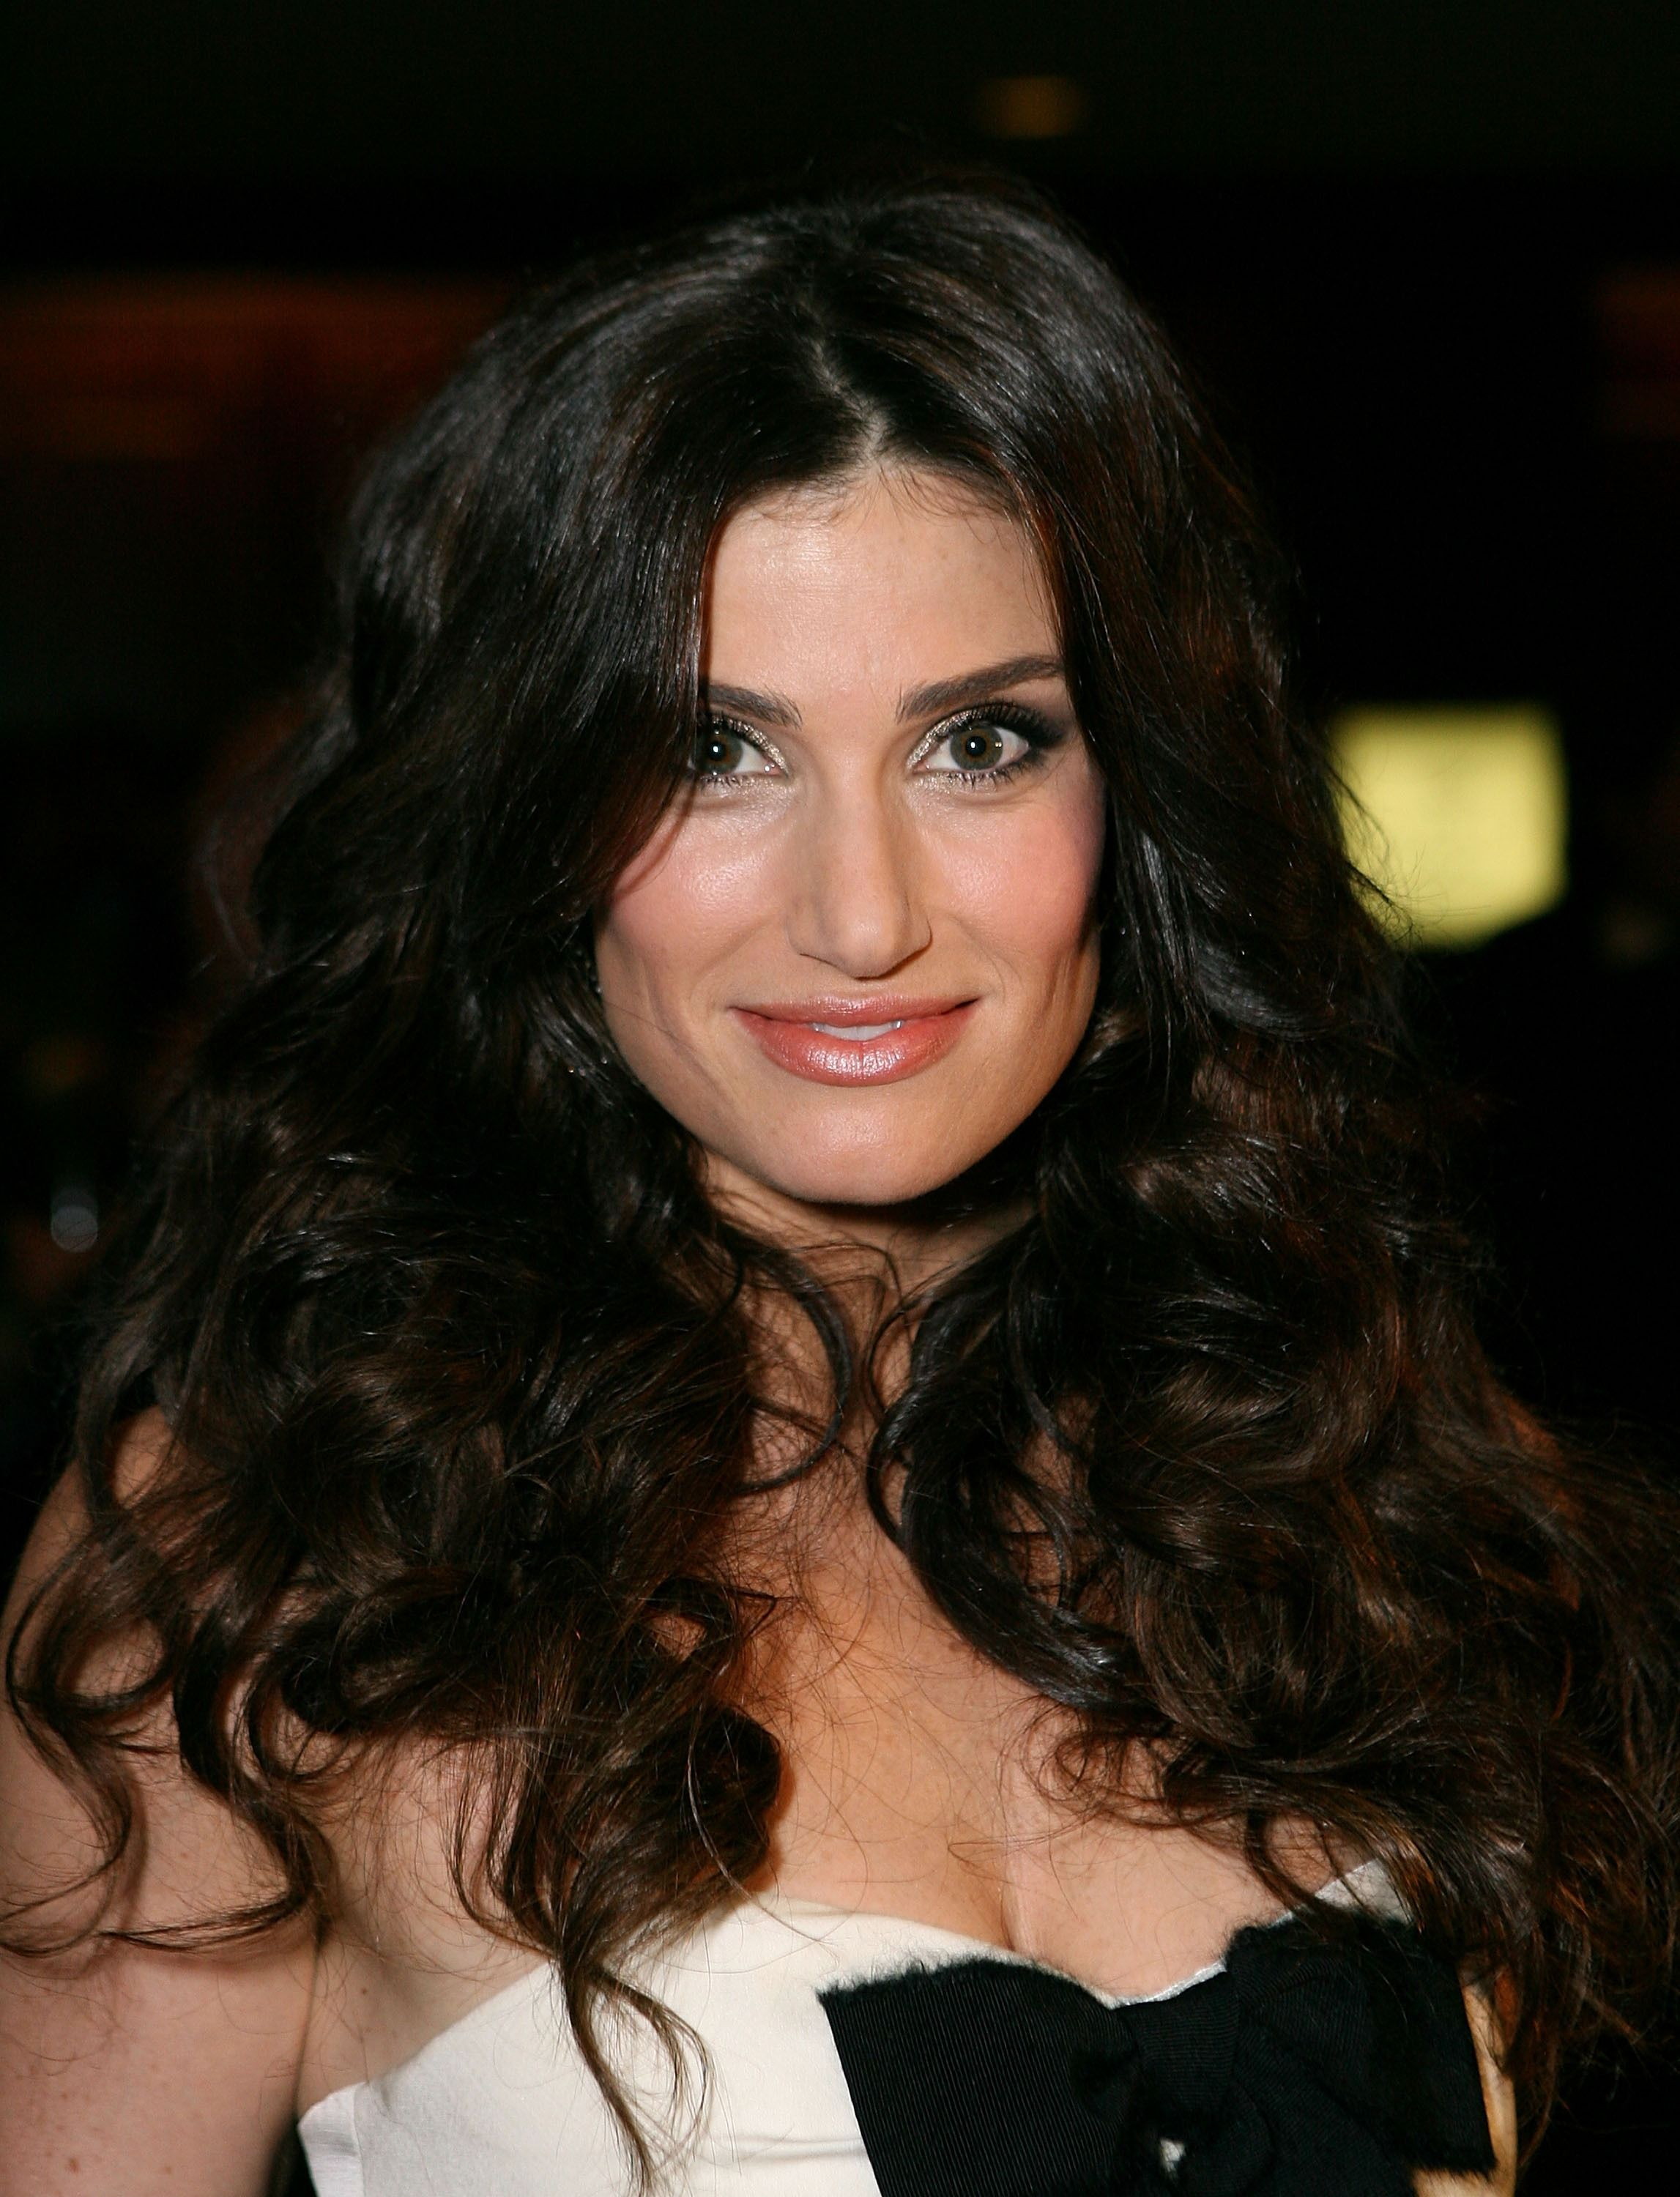 idina menzel let it go text